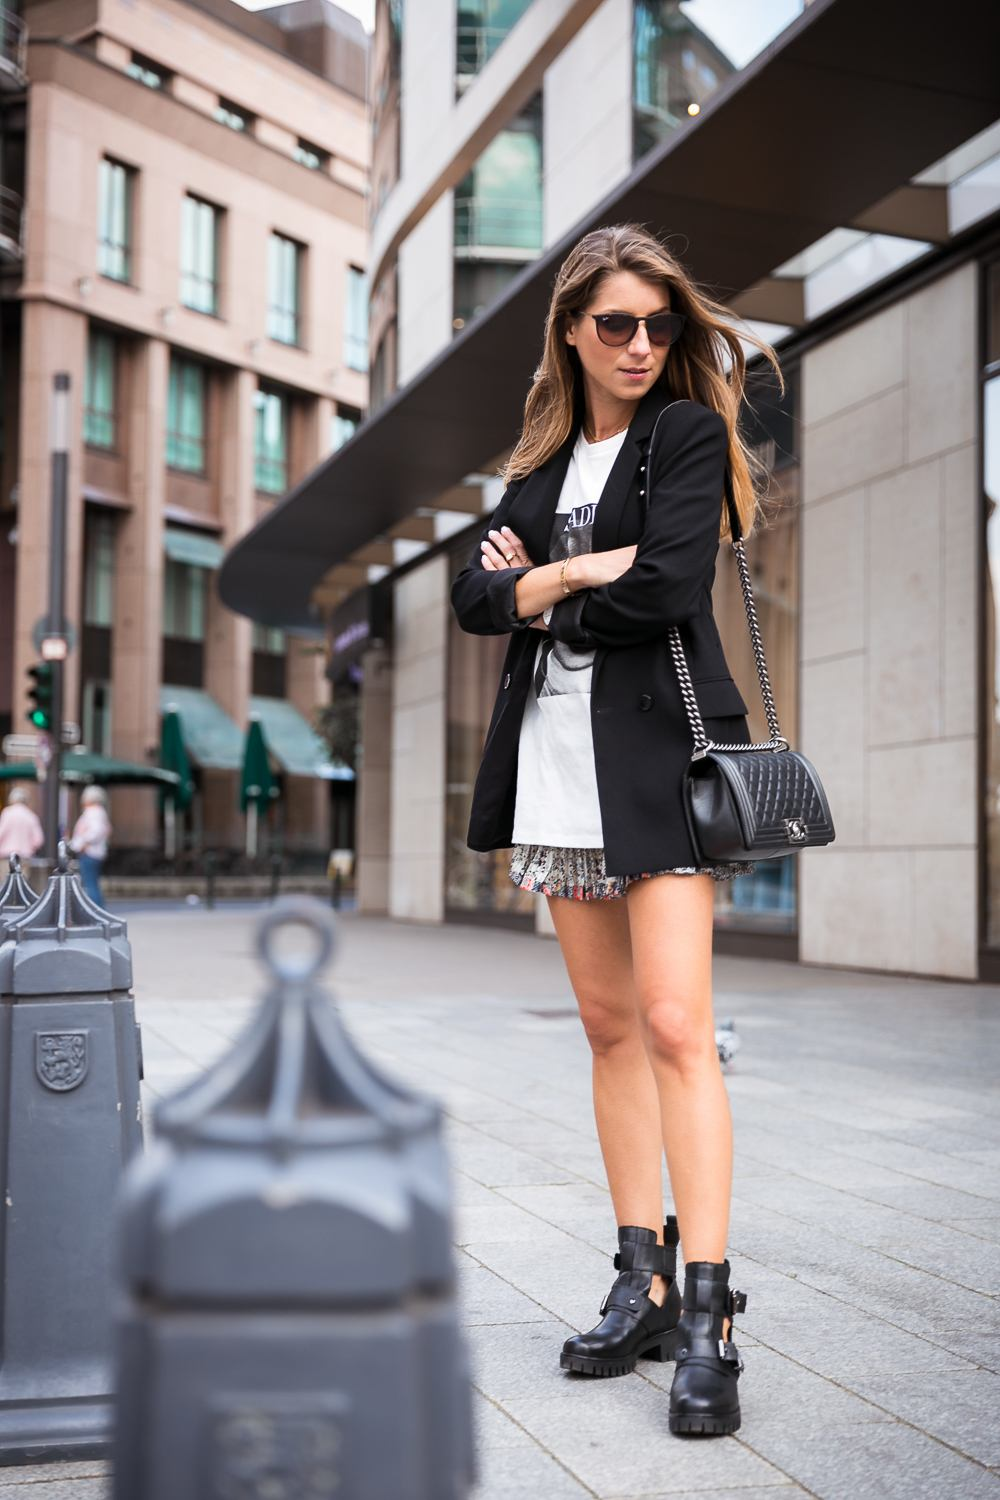 cut out boots outfit blazer skirt t shirt sade chanel boy bag fashion blog düsseldorf streetstyle